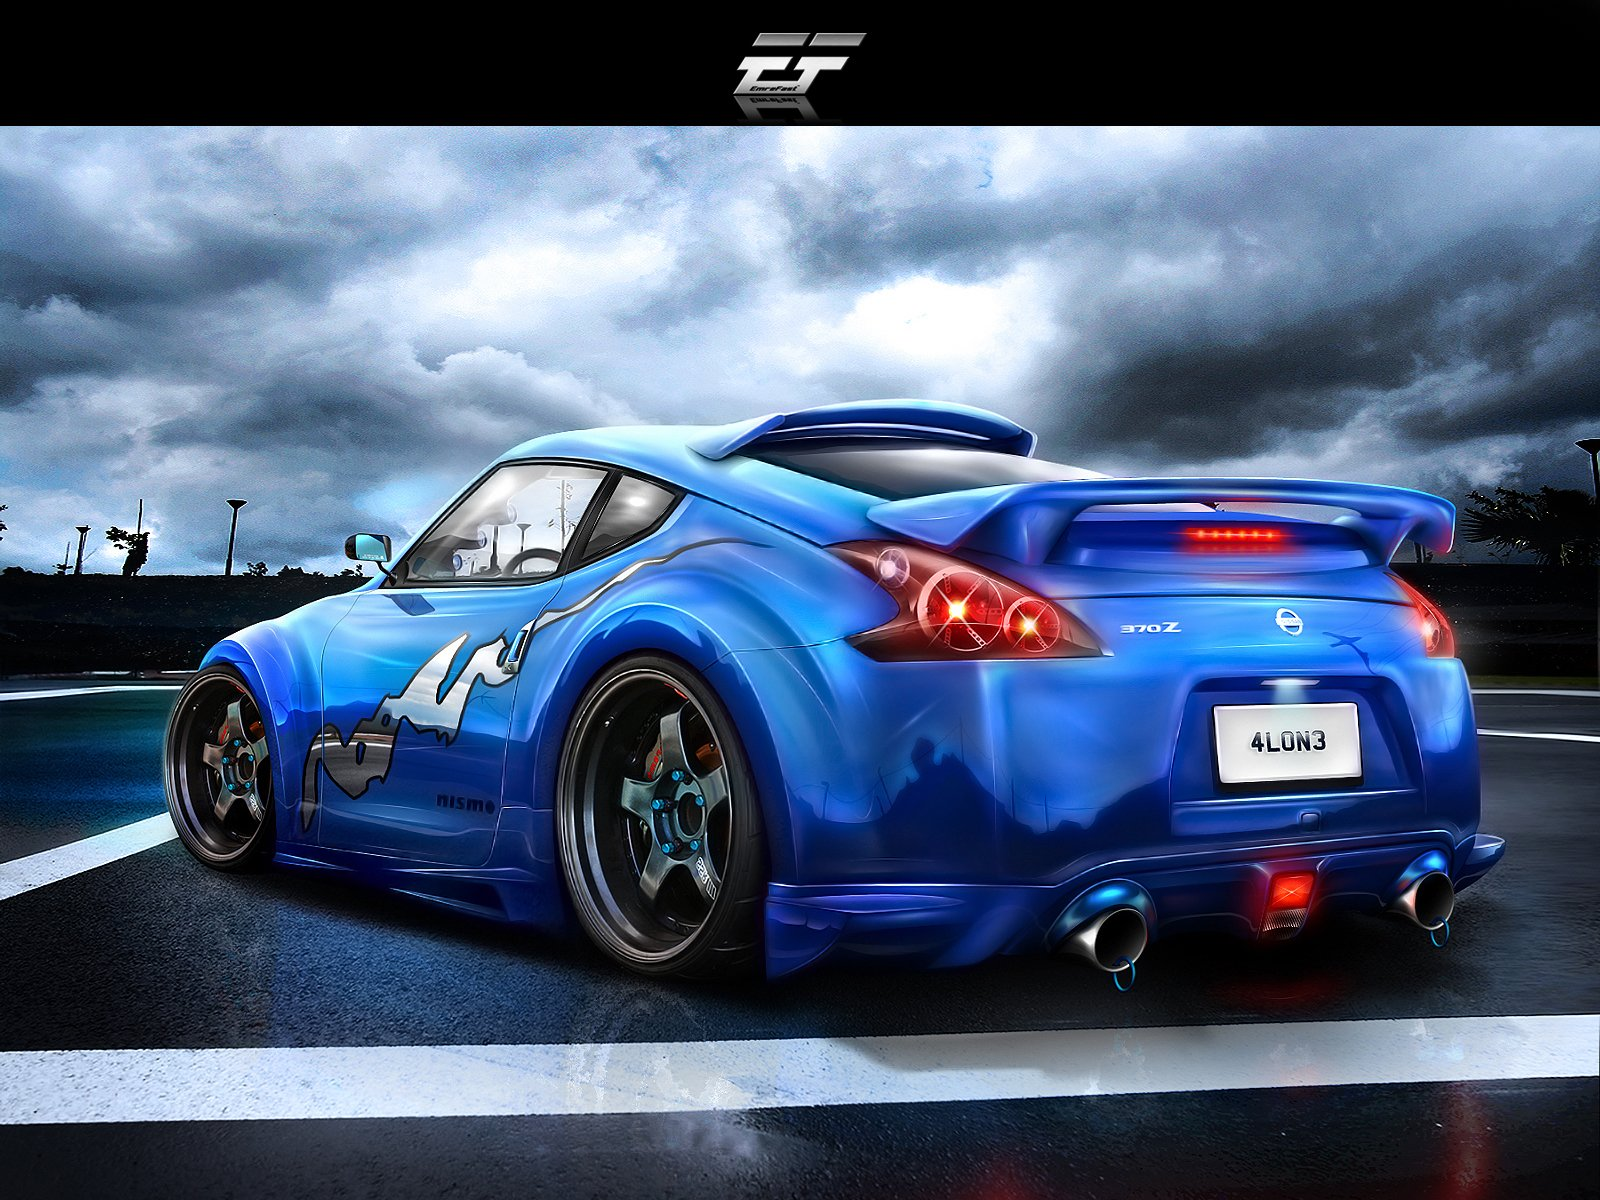 Latest Moderate Cars Nismo 370Z Wallpaper Free Download